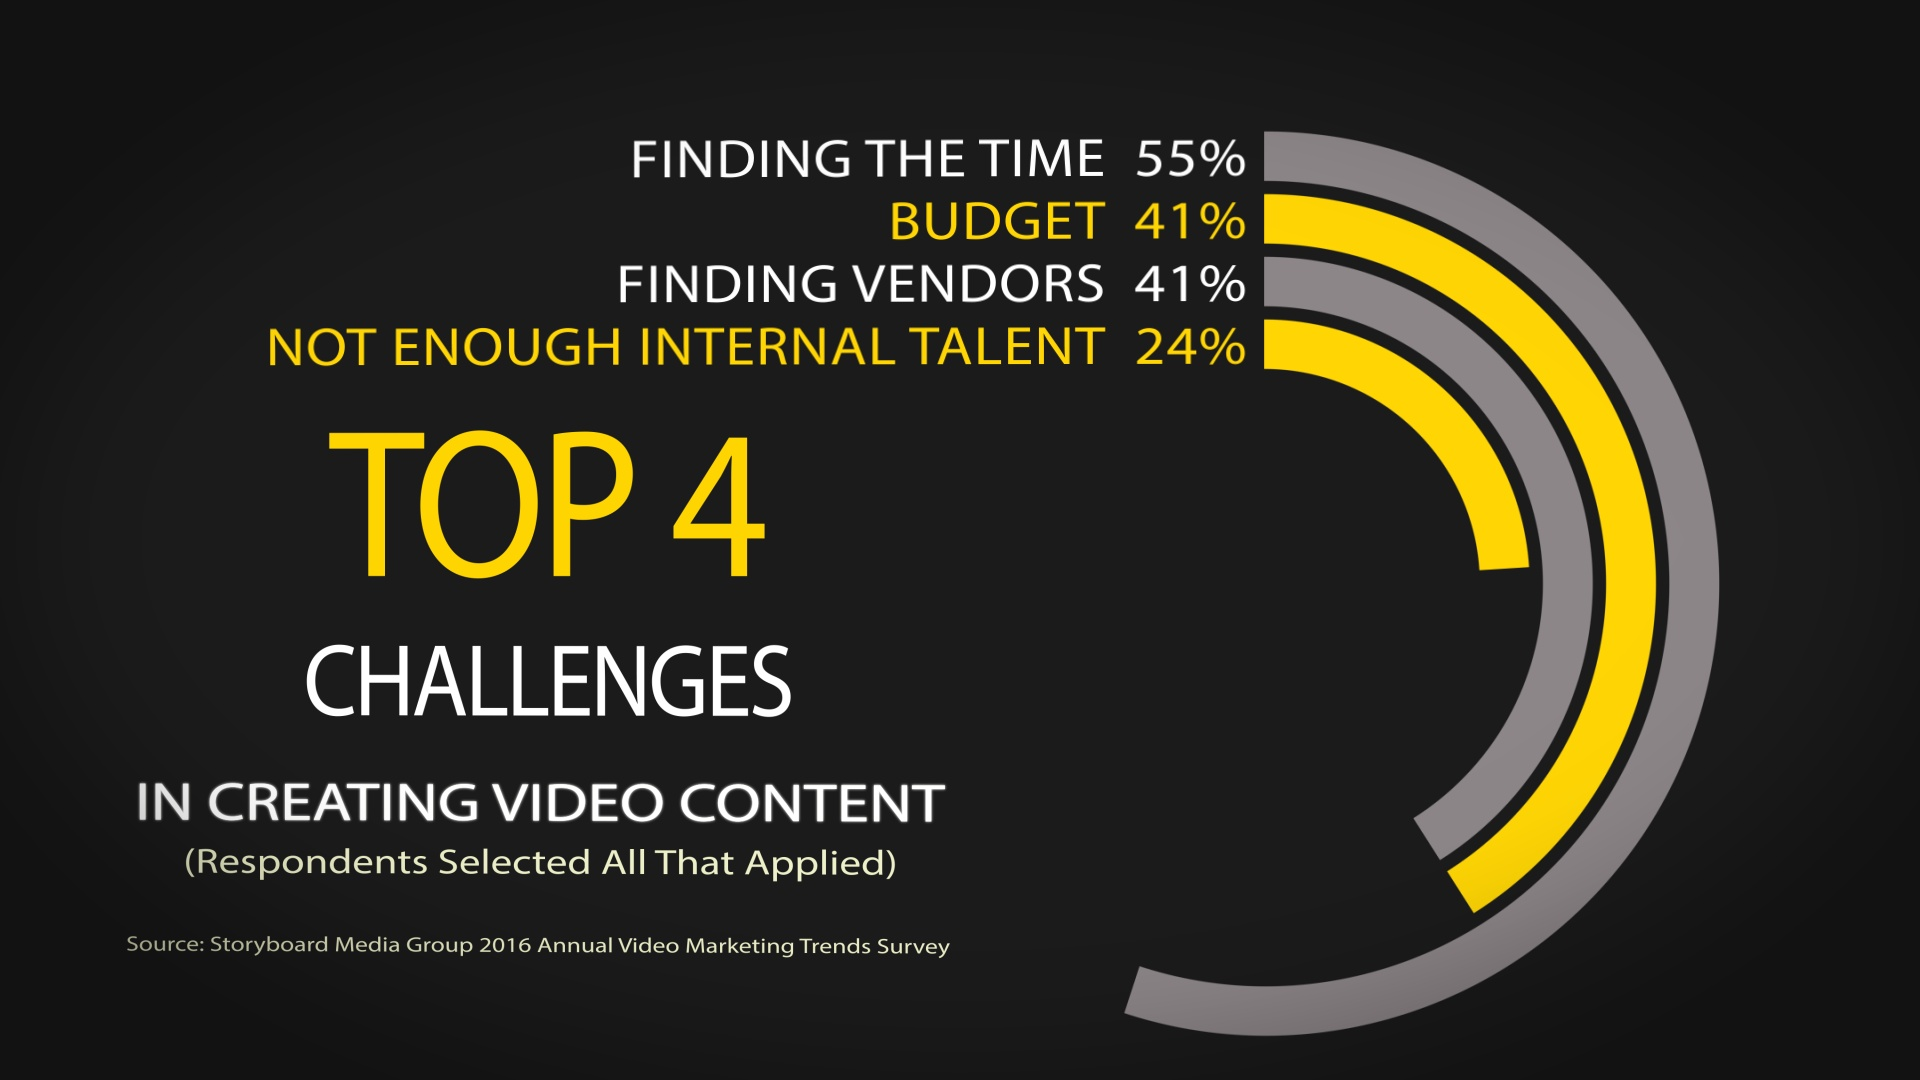 What challenges do you face, if any, in creating quality video content? Are you alone or do others share the same challenges?